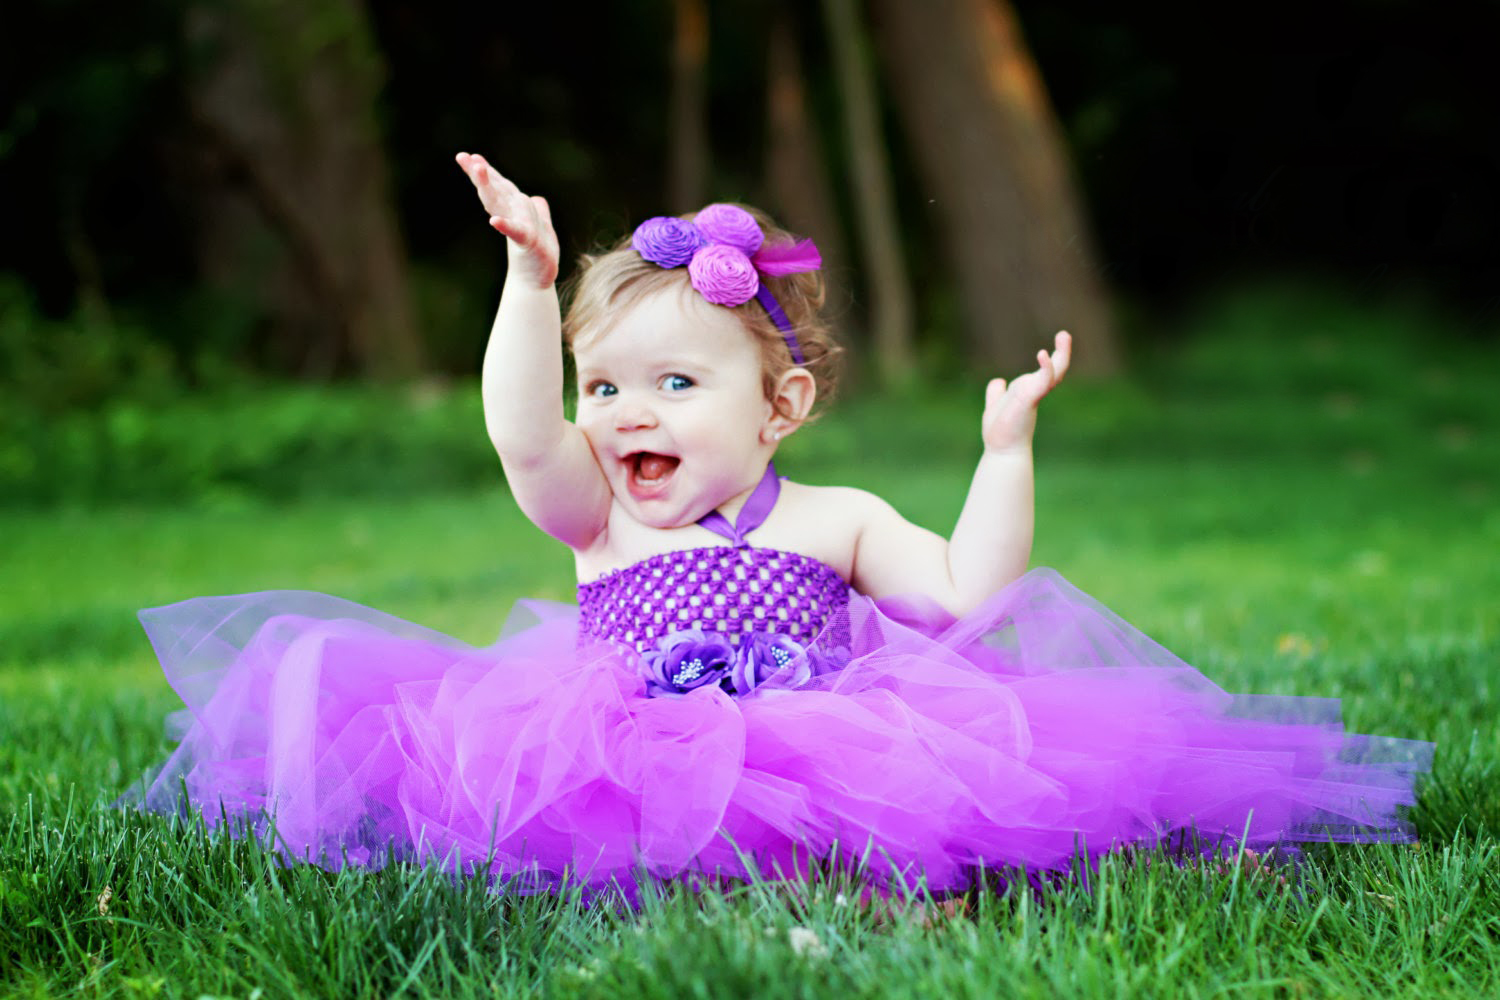 Latest cute Baby - Sweet Baby HD Wallpaper in 1080p ~ Super HD Wallpaperss